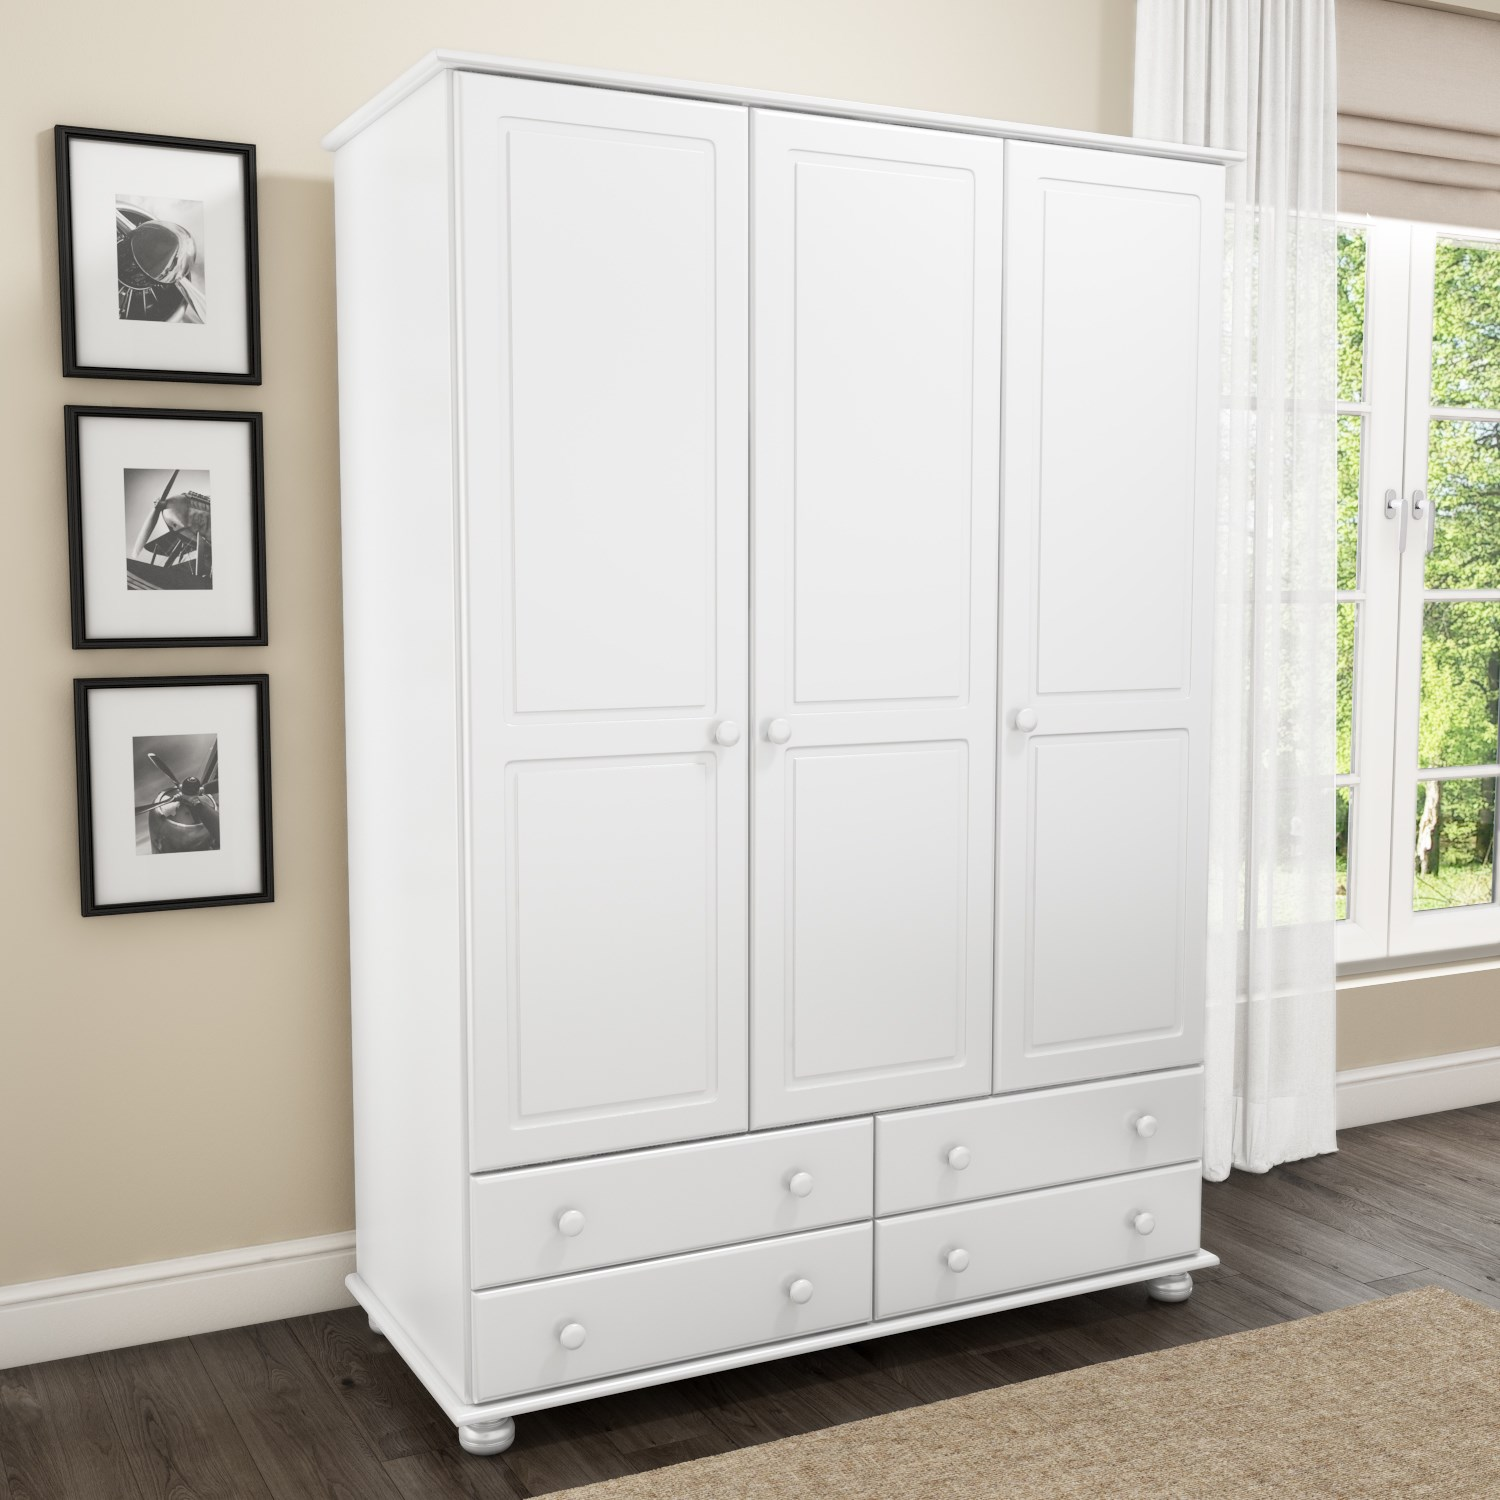 Hamilton 3 Door 4 Drawer Wardrobe in White